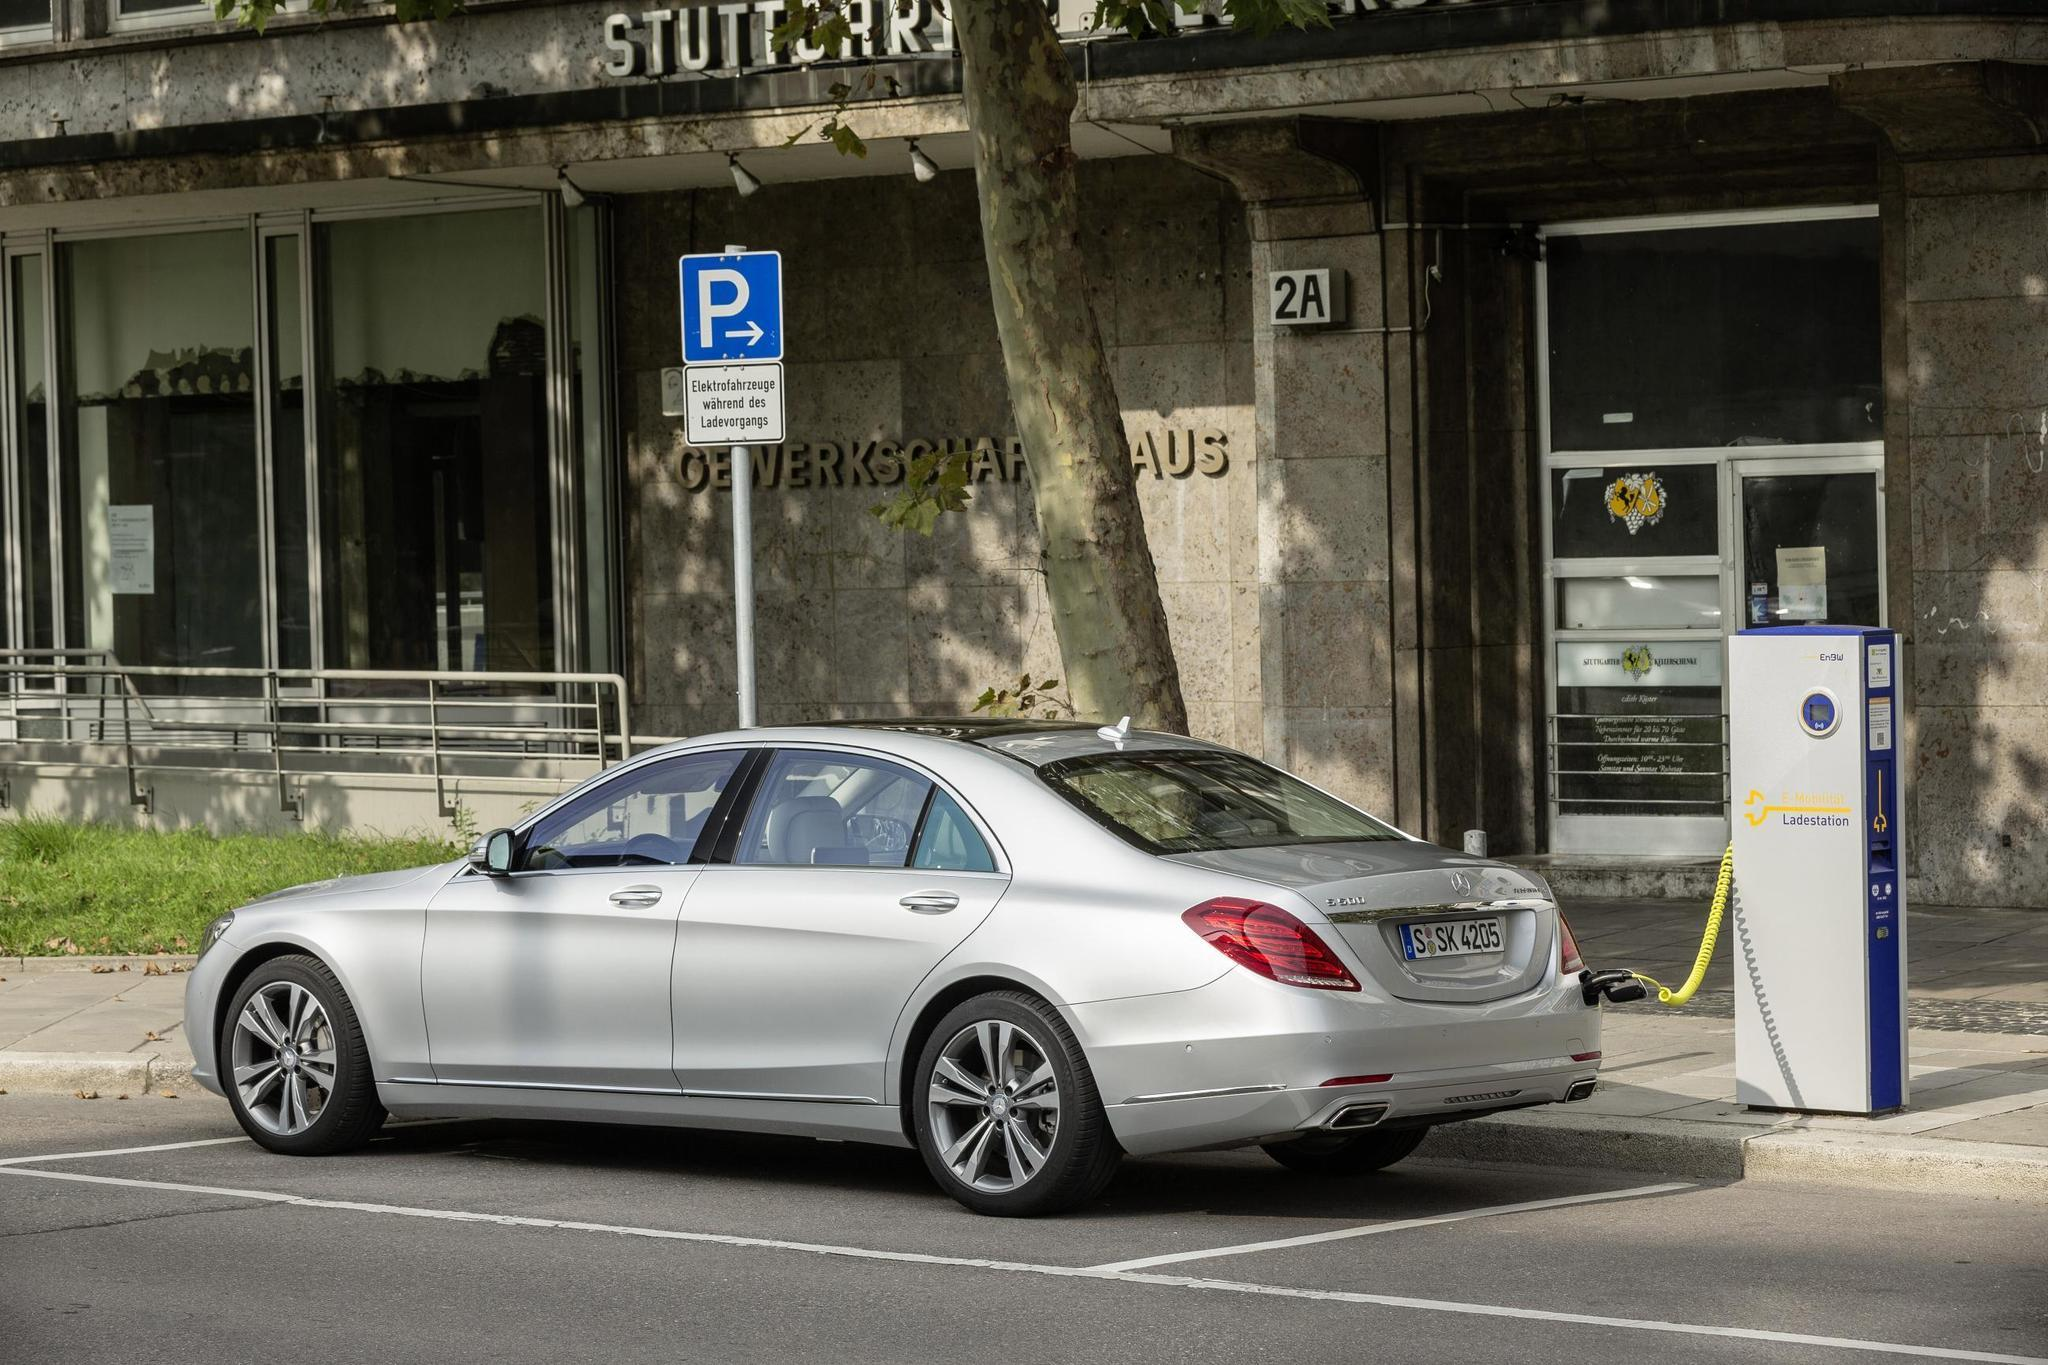 Mercedes-Benz launches first plug-in hybrid, S550 - Chicago Tribune